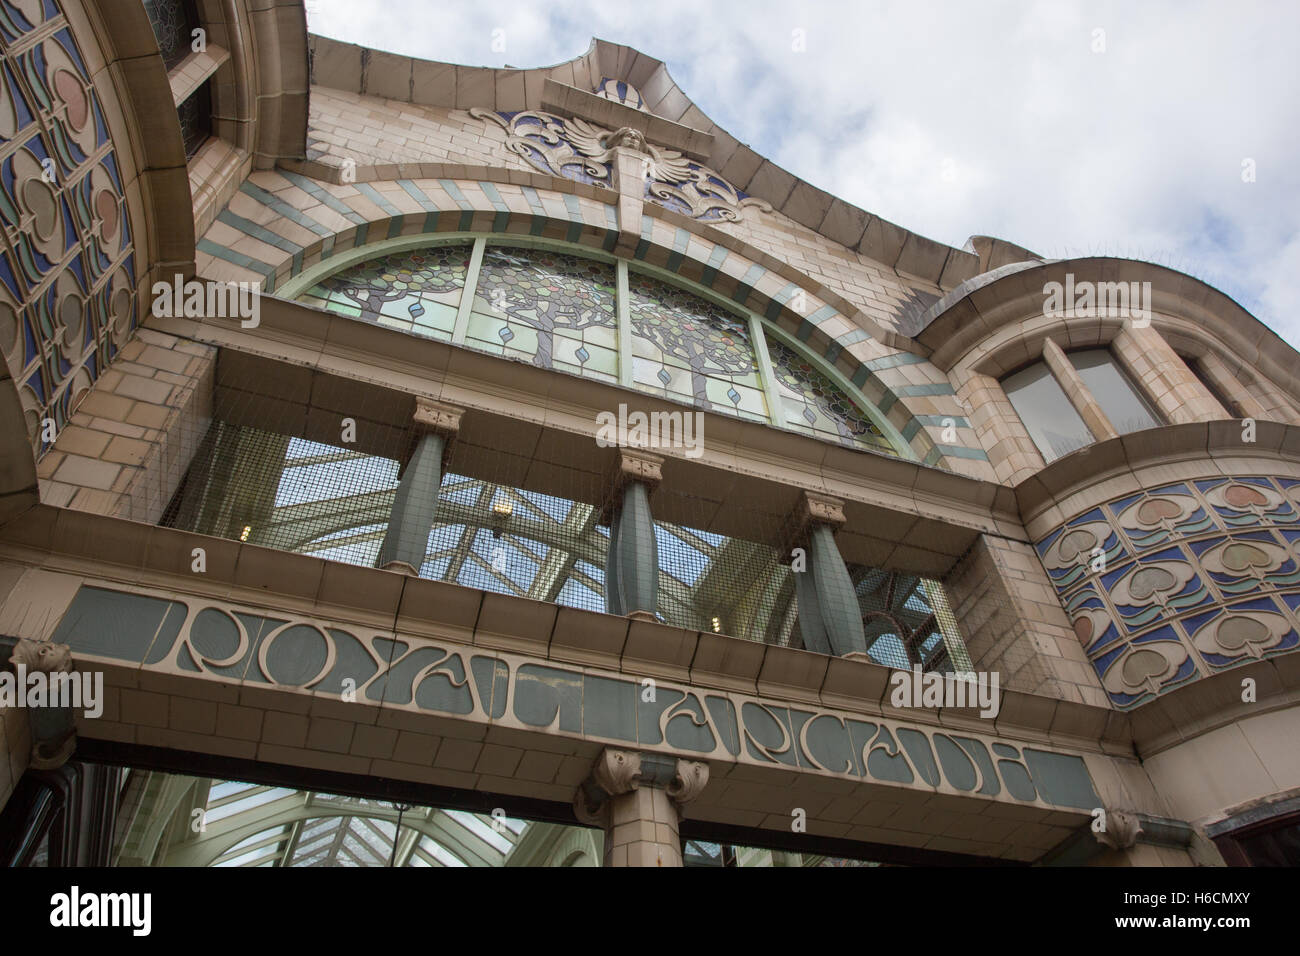 Royal Arcade, Norwich - Stock Image